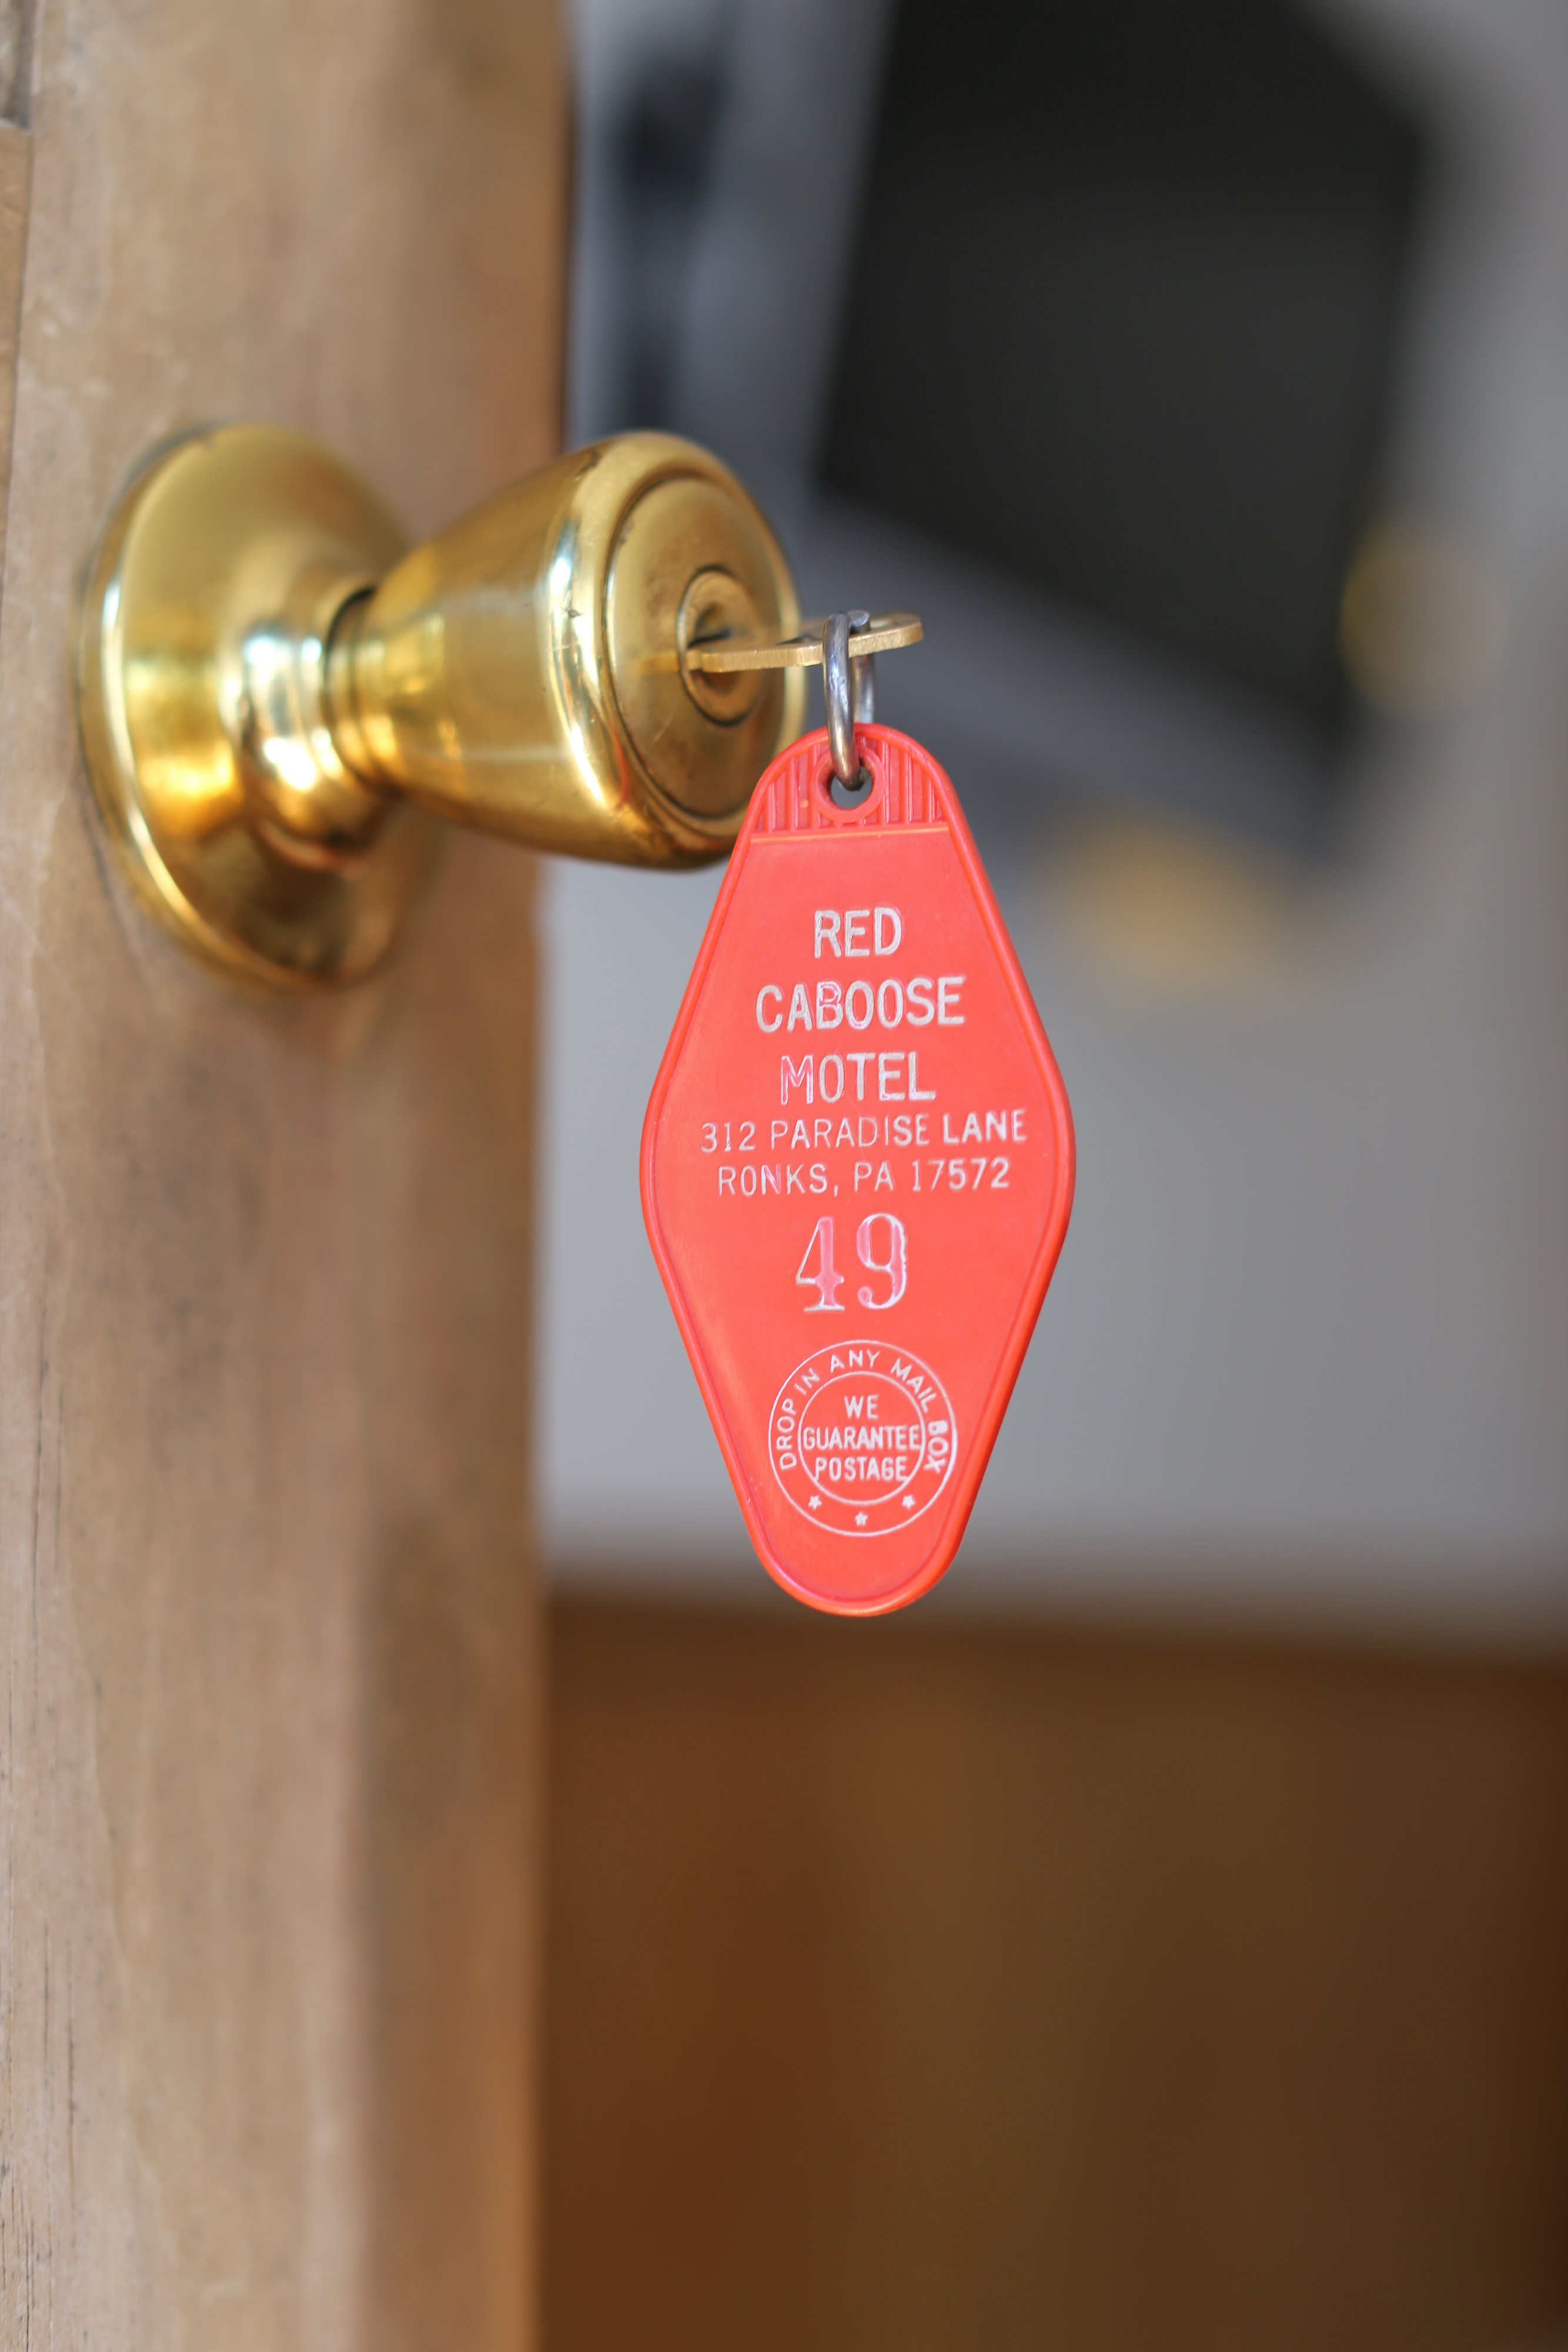 open motel door with key in lock featuring red motel key chain